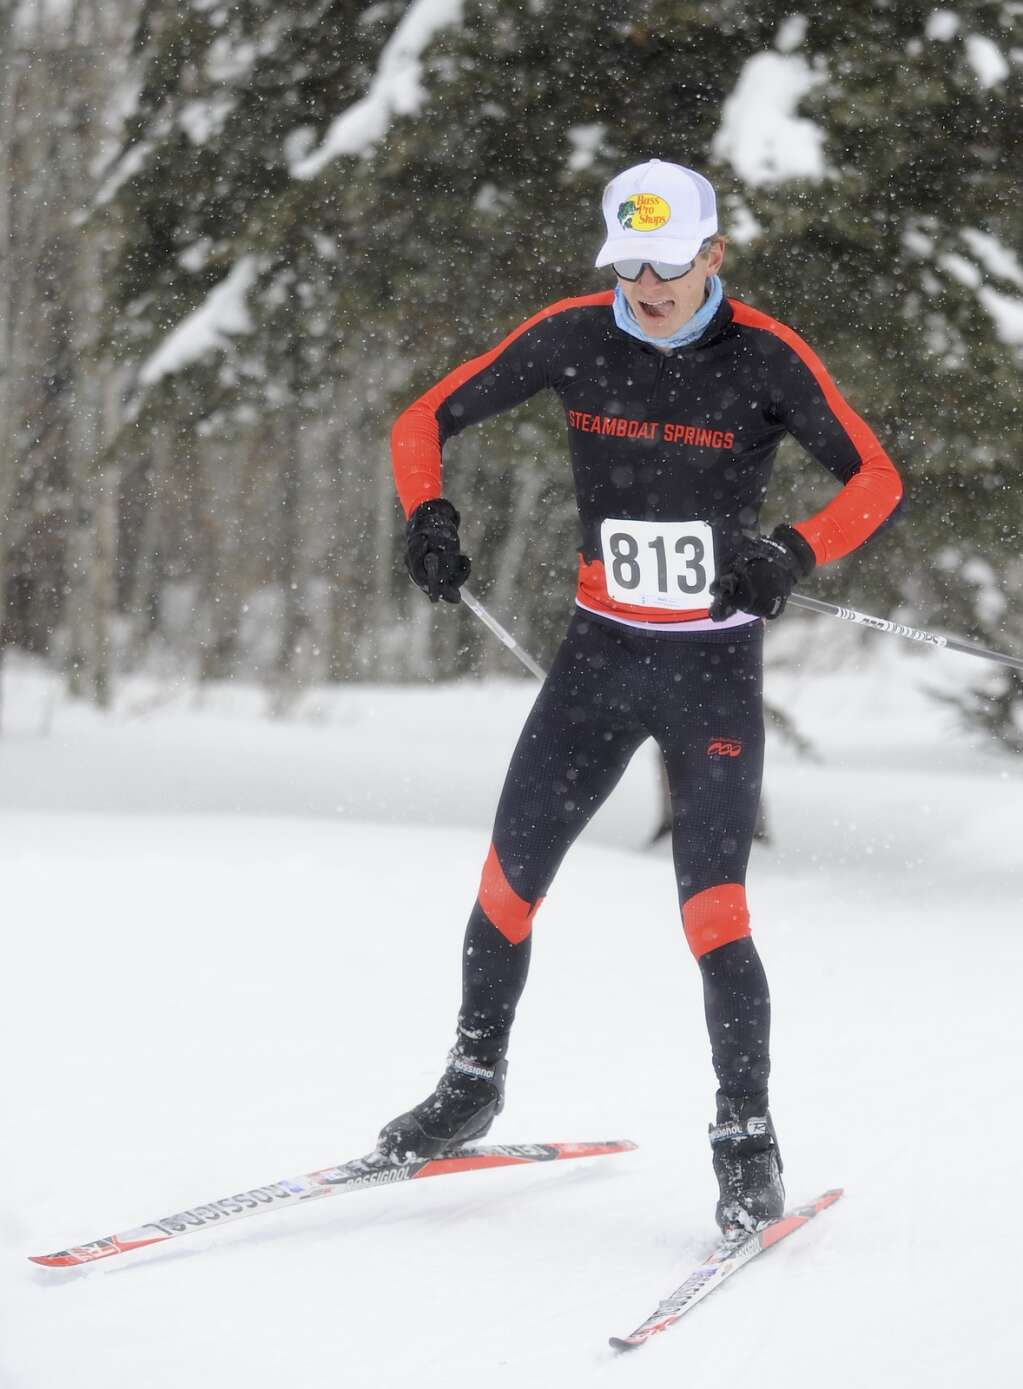 Steamboat Springs Nordic skier Jameson Tracy enjoys the snow at a home race at the Steamboat Ski Touring Center on Friday afternoon. (Photo by Shelby Reardon)